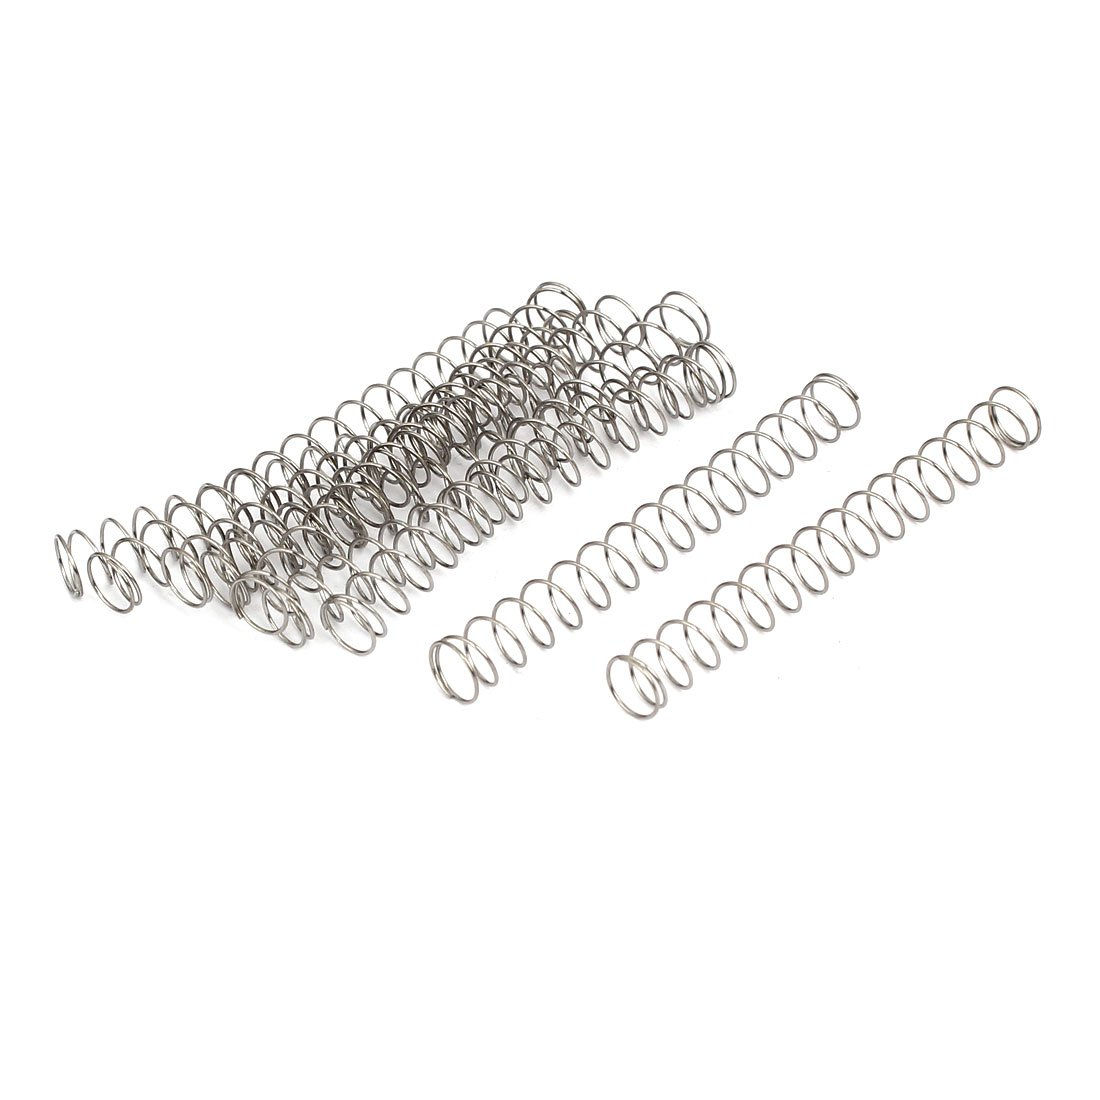 uxcell 0.4mmx6mmx50mm 304 Stainless Steel Compression Springs 10pcs